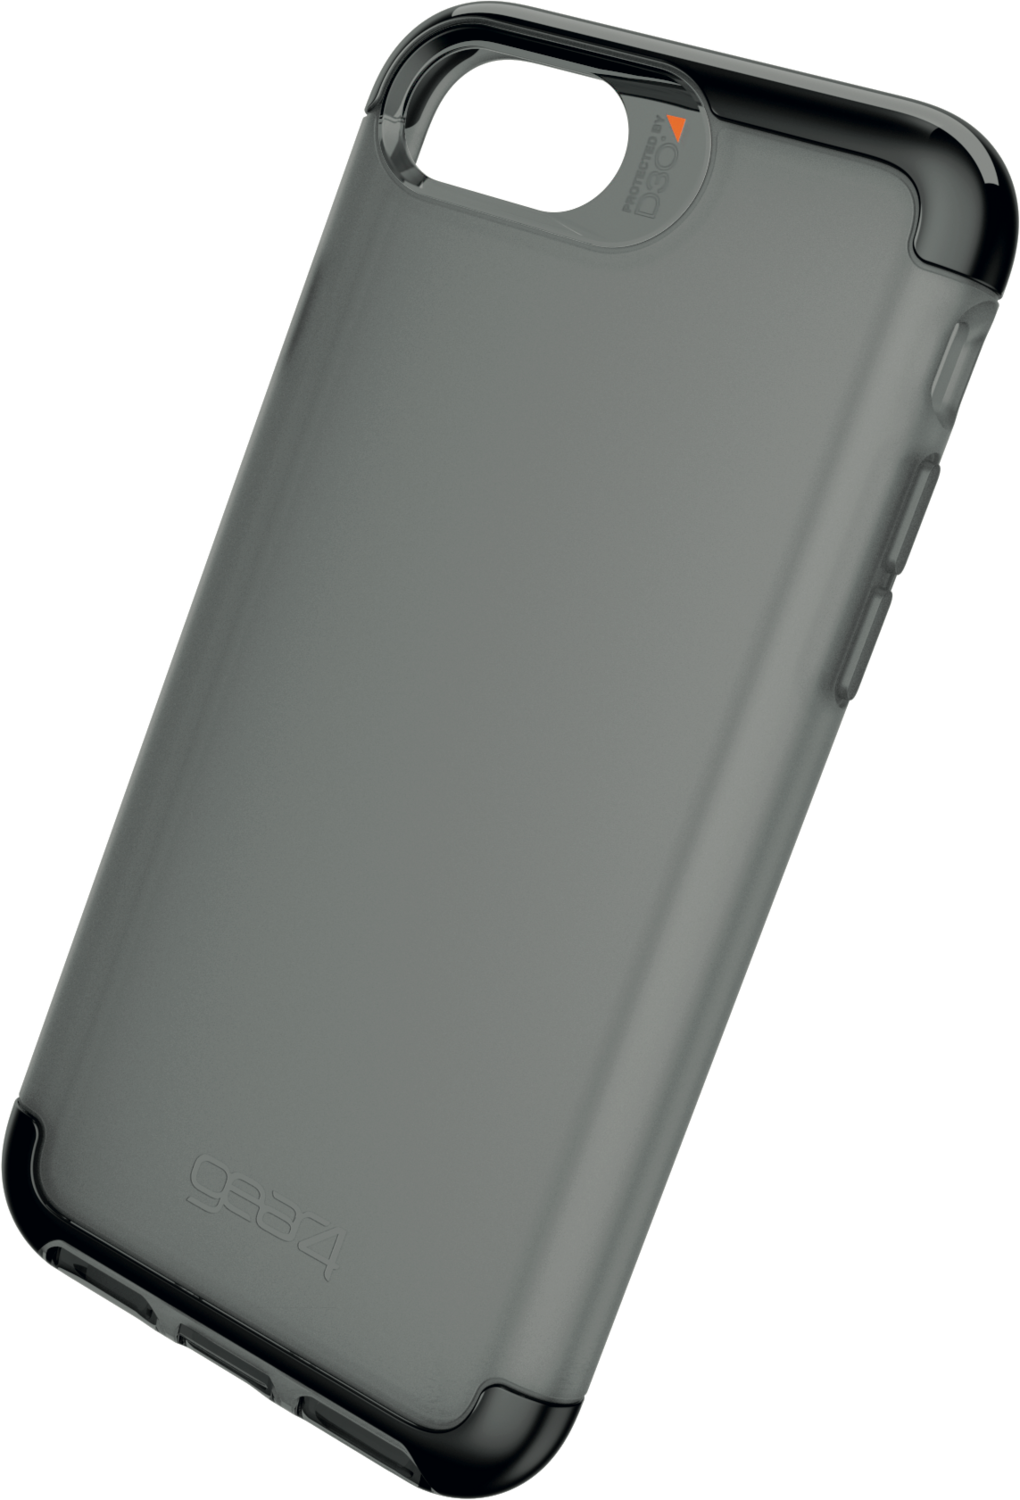 GEAR4 Wembley for IPhone 6/6s/7/8/SE 2G Smoke